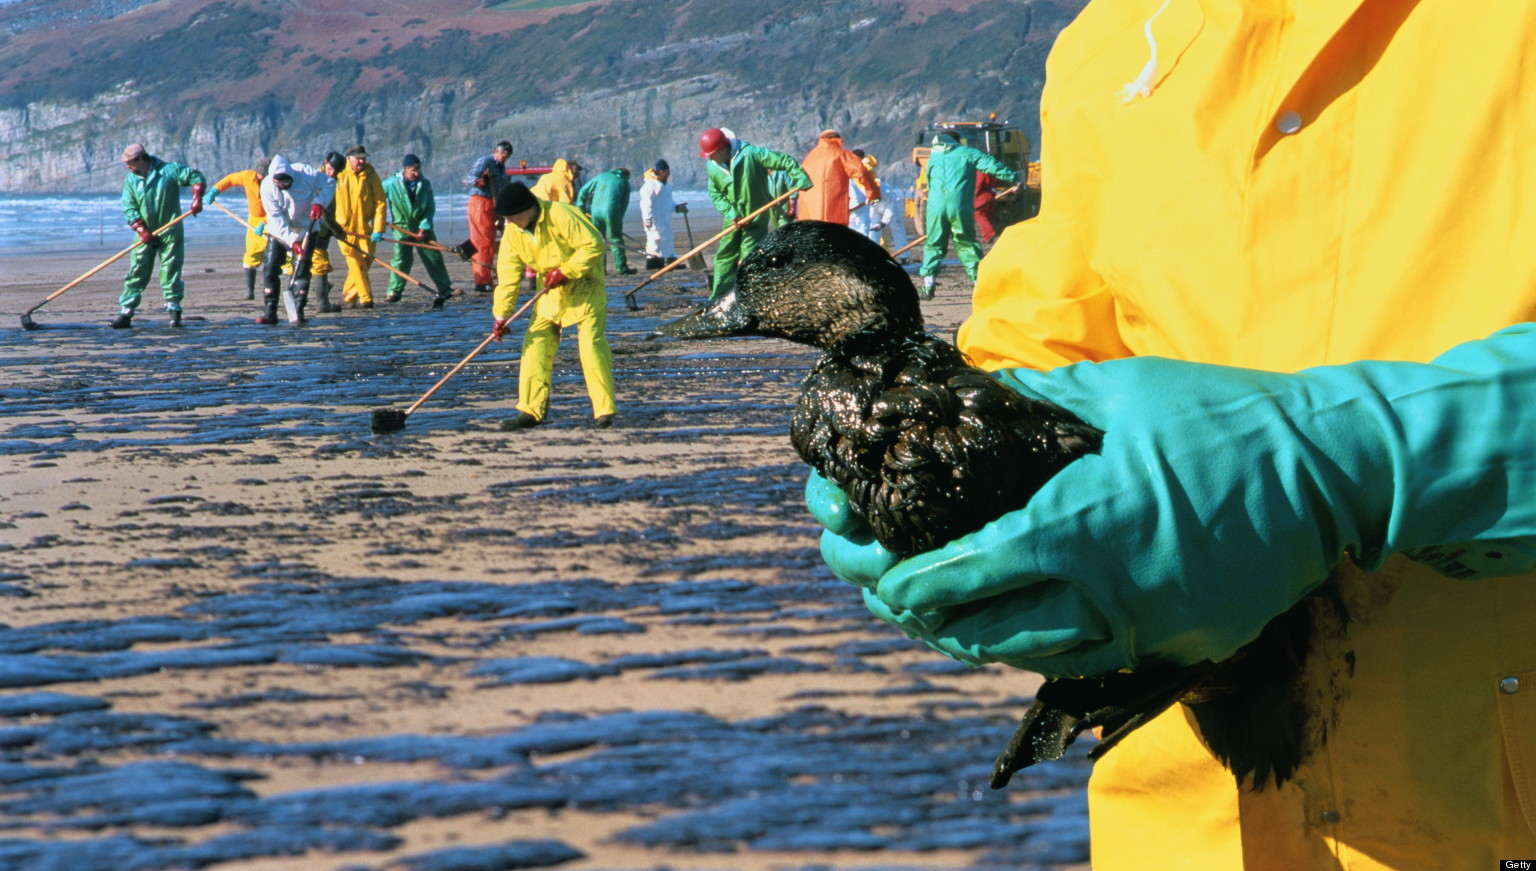 oil spill should not be cleaned up in a marine environment An oil spill is the release of a liquid petroleum hydrocarbon into the environment, especially the marine ecosystem, due to human activity, and is a form of pollution the term is usually given to marine oil spills, where oil is released into the ocean or coastal waters, but spills may also occur on land oil spills may be due to.